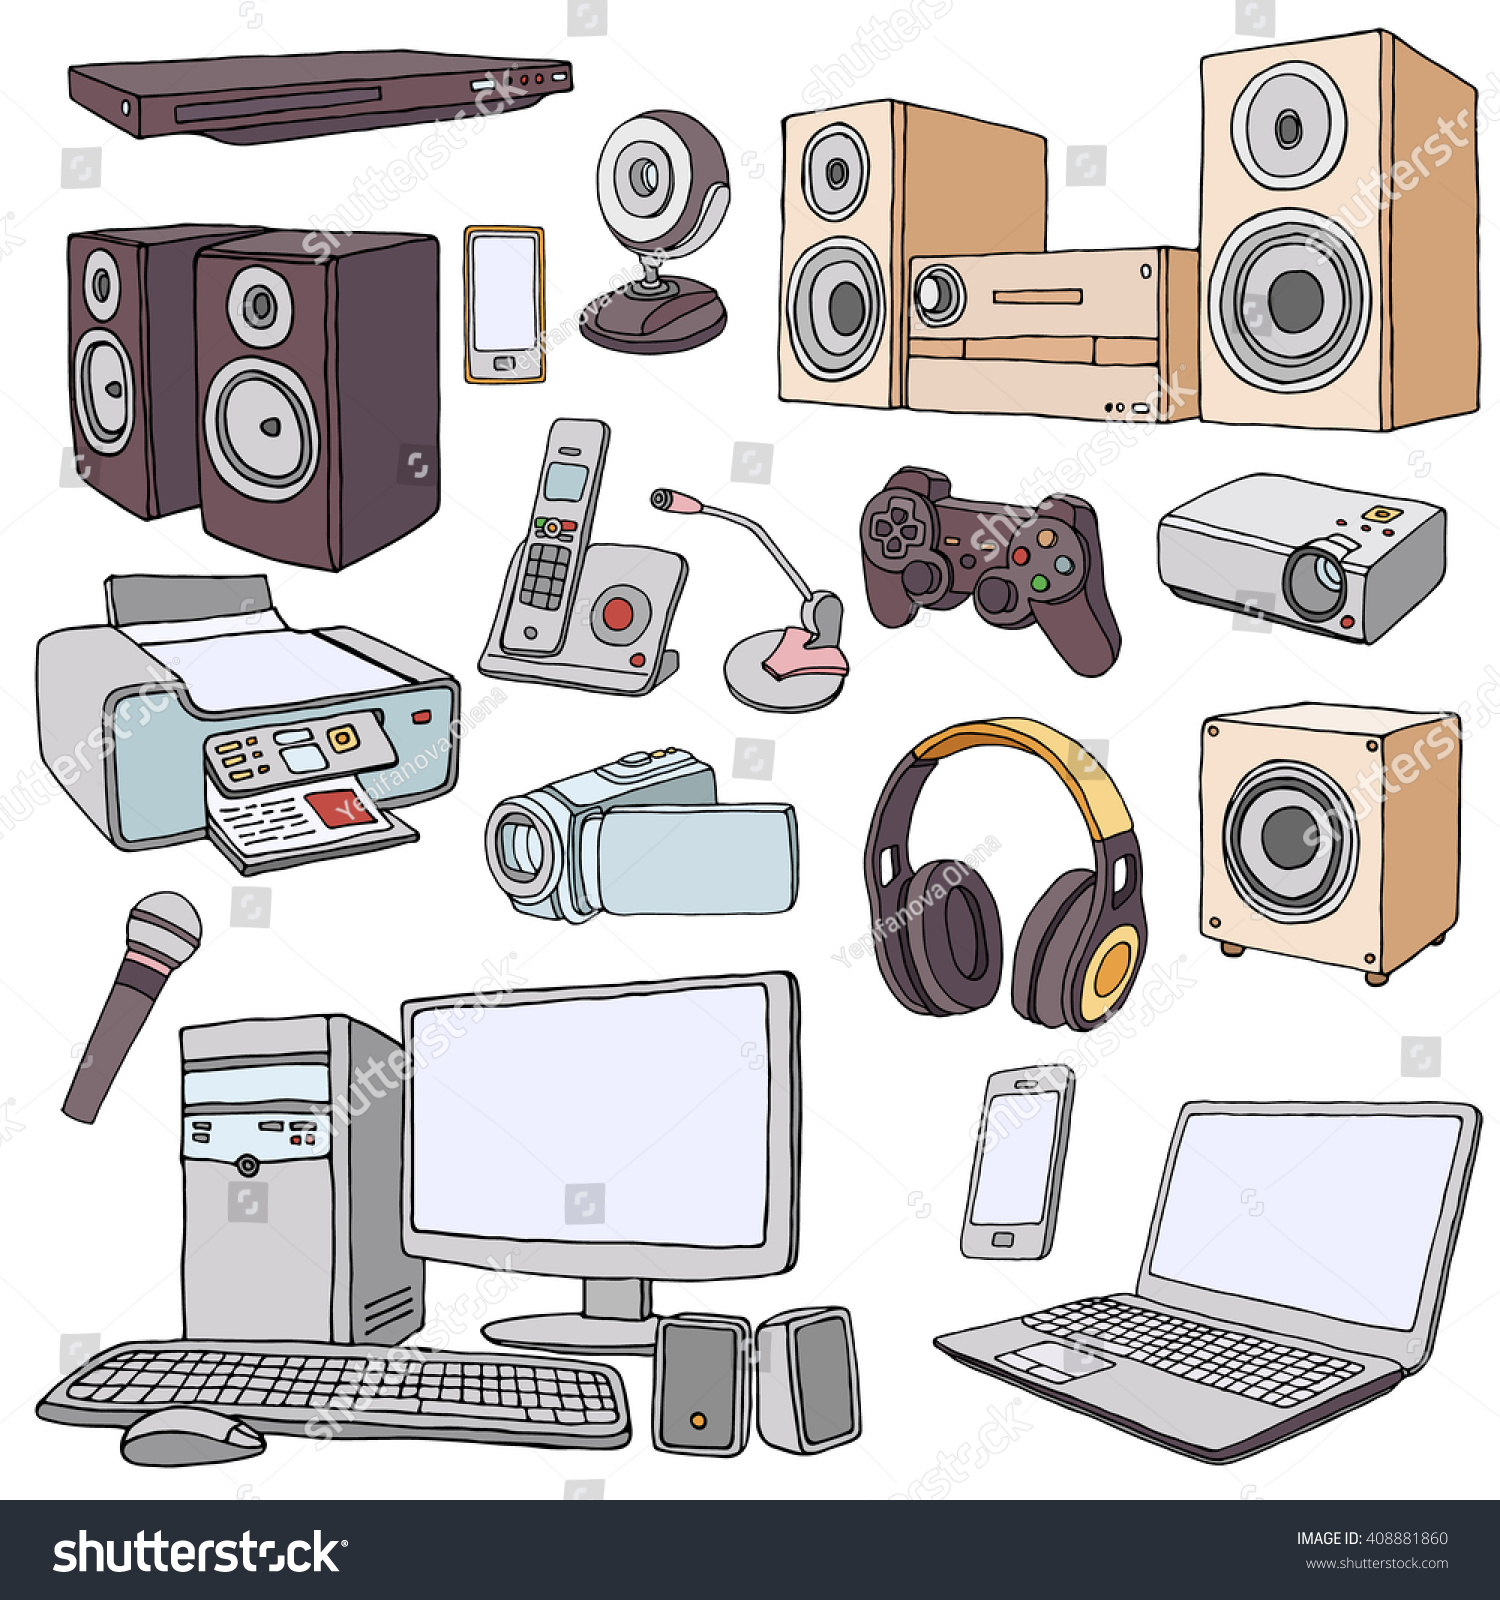 living room appliances. Audio Visual System Appliances for Living Room  Doodle illustration of audio video equipment Stock Vector 408881860